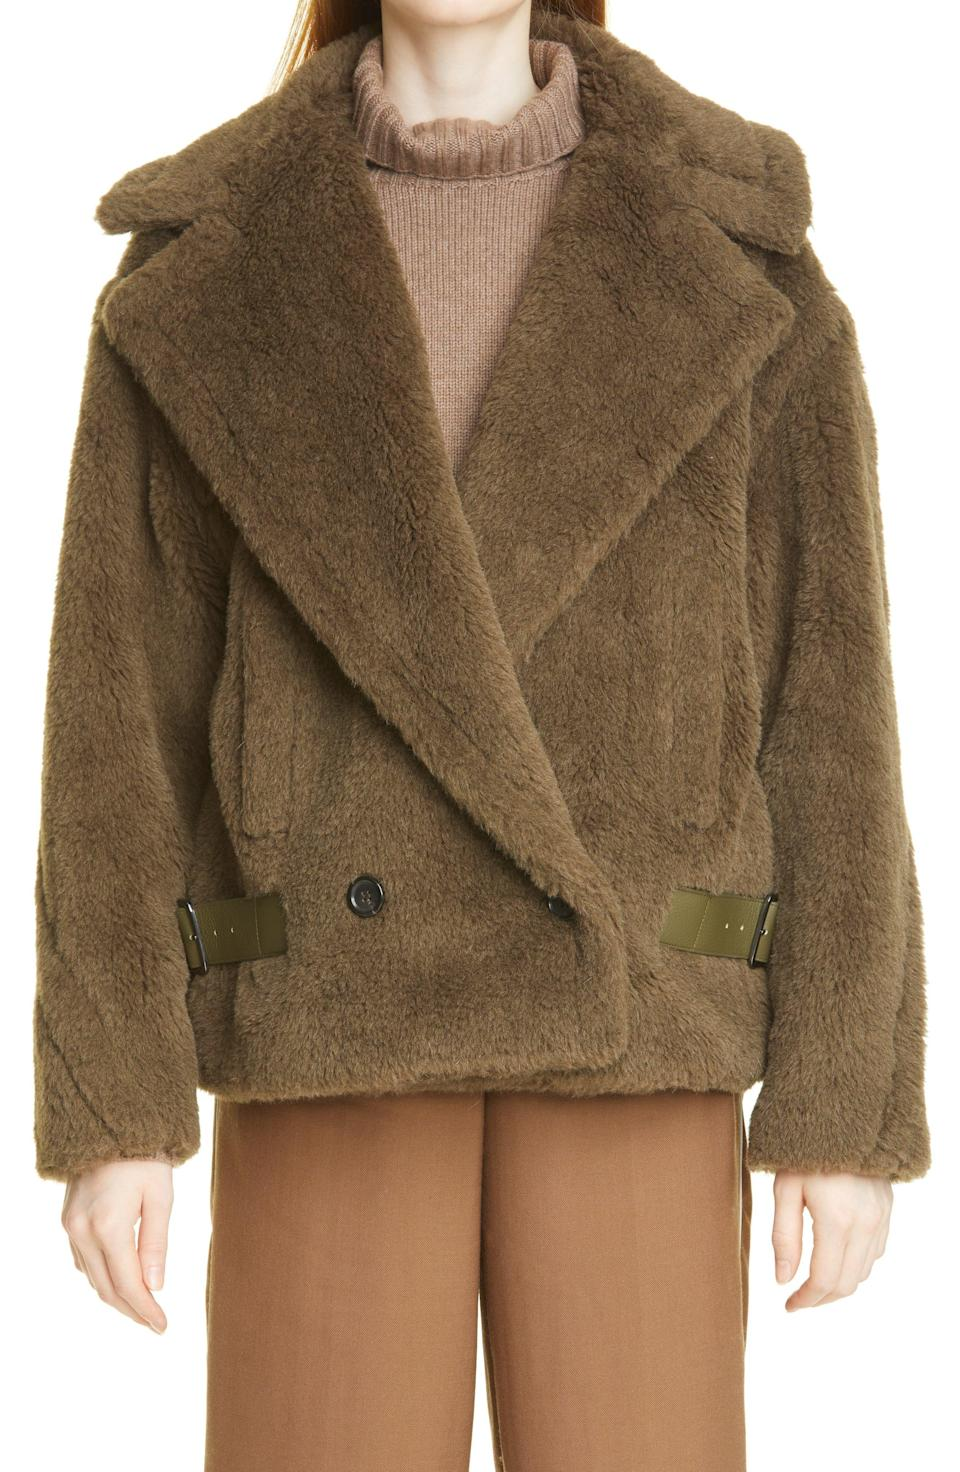 """<p><strong>Max Mara</strong></p><p>nordstrom.com</p><p><strong>$2990.00</strong></p><p><a href=""""https://go.redirectingat.com?id=74968X1596630&url=https%3A%2F%2Fwww.nordstrom.com%2Fs%2Fmax-mara-cristin-teddy-bomber-coat%2F6466388&sref=https%3A%2F%2Fwww.townandcountrymag.com%2Fstyle%2Ffashion-trends%2Fg37682006%2Fnicky-hilton-fall-favorites%2F"""" rel=""""nofollow noopener"""" target=""""_blank"""" data-ylk=""""slk:Shop Now"""" class=""""link rapid-noclick-resp"""">Shop Now</a></p><p>""""No one does a coat better than Max Mara. It's so simple, yet timeless and elegant. Not to mention it keeps you so warm. For the past few years I've literally lived in my Teddy coats. It's like you're walking around wrapped in a big blanket. So I definitely have my eye on this new bomber jacket version. I'll call it the Teddy 2.0.""""</p>"""